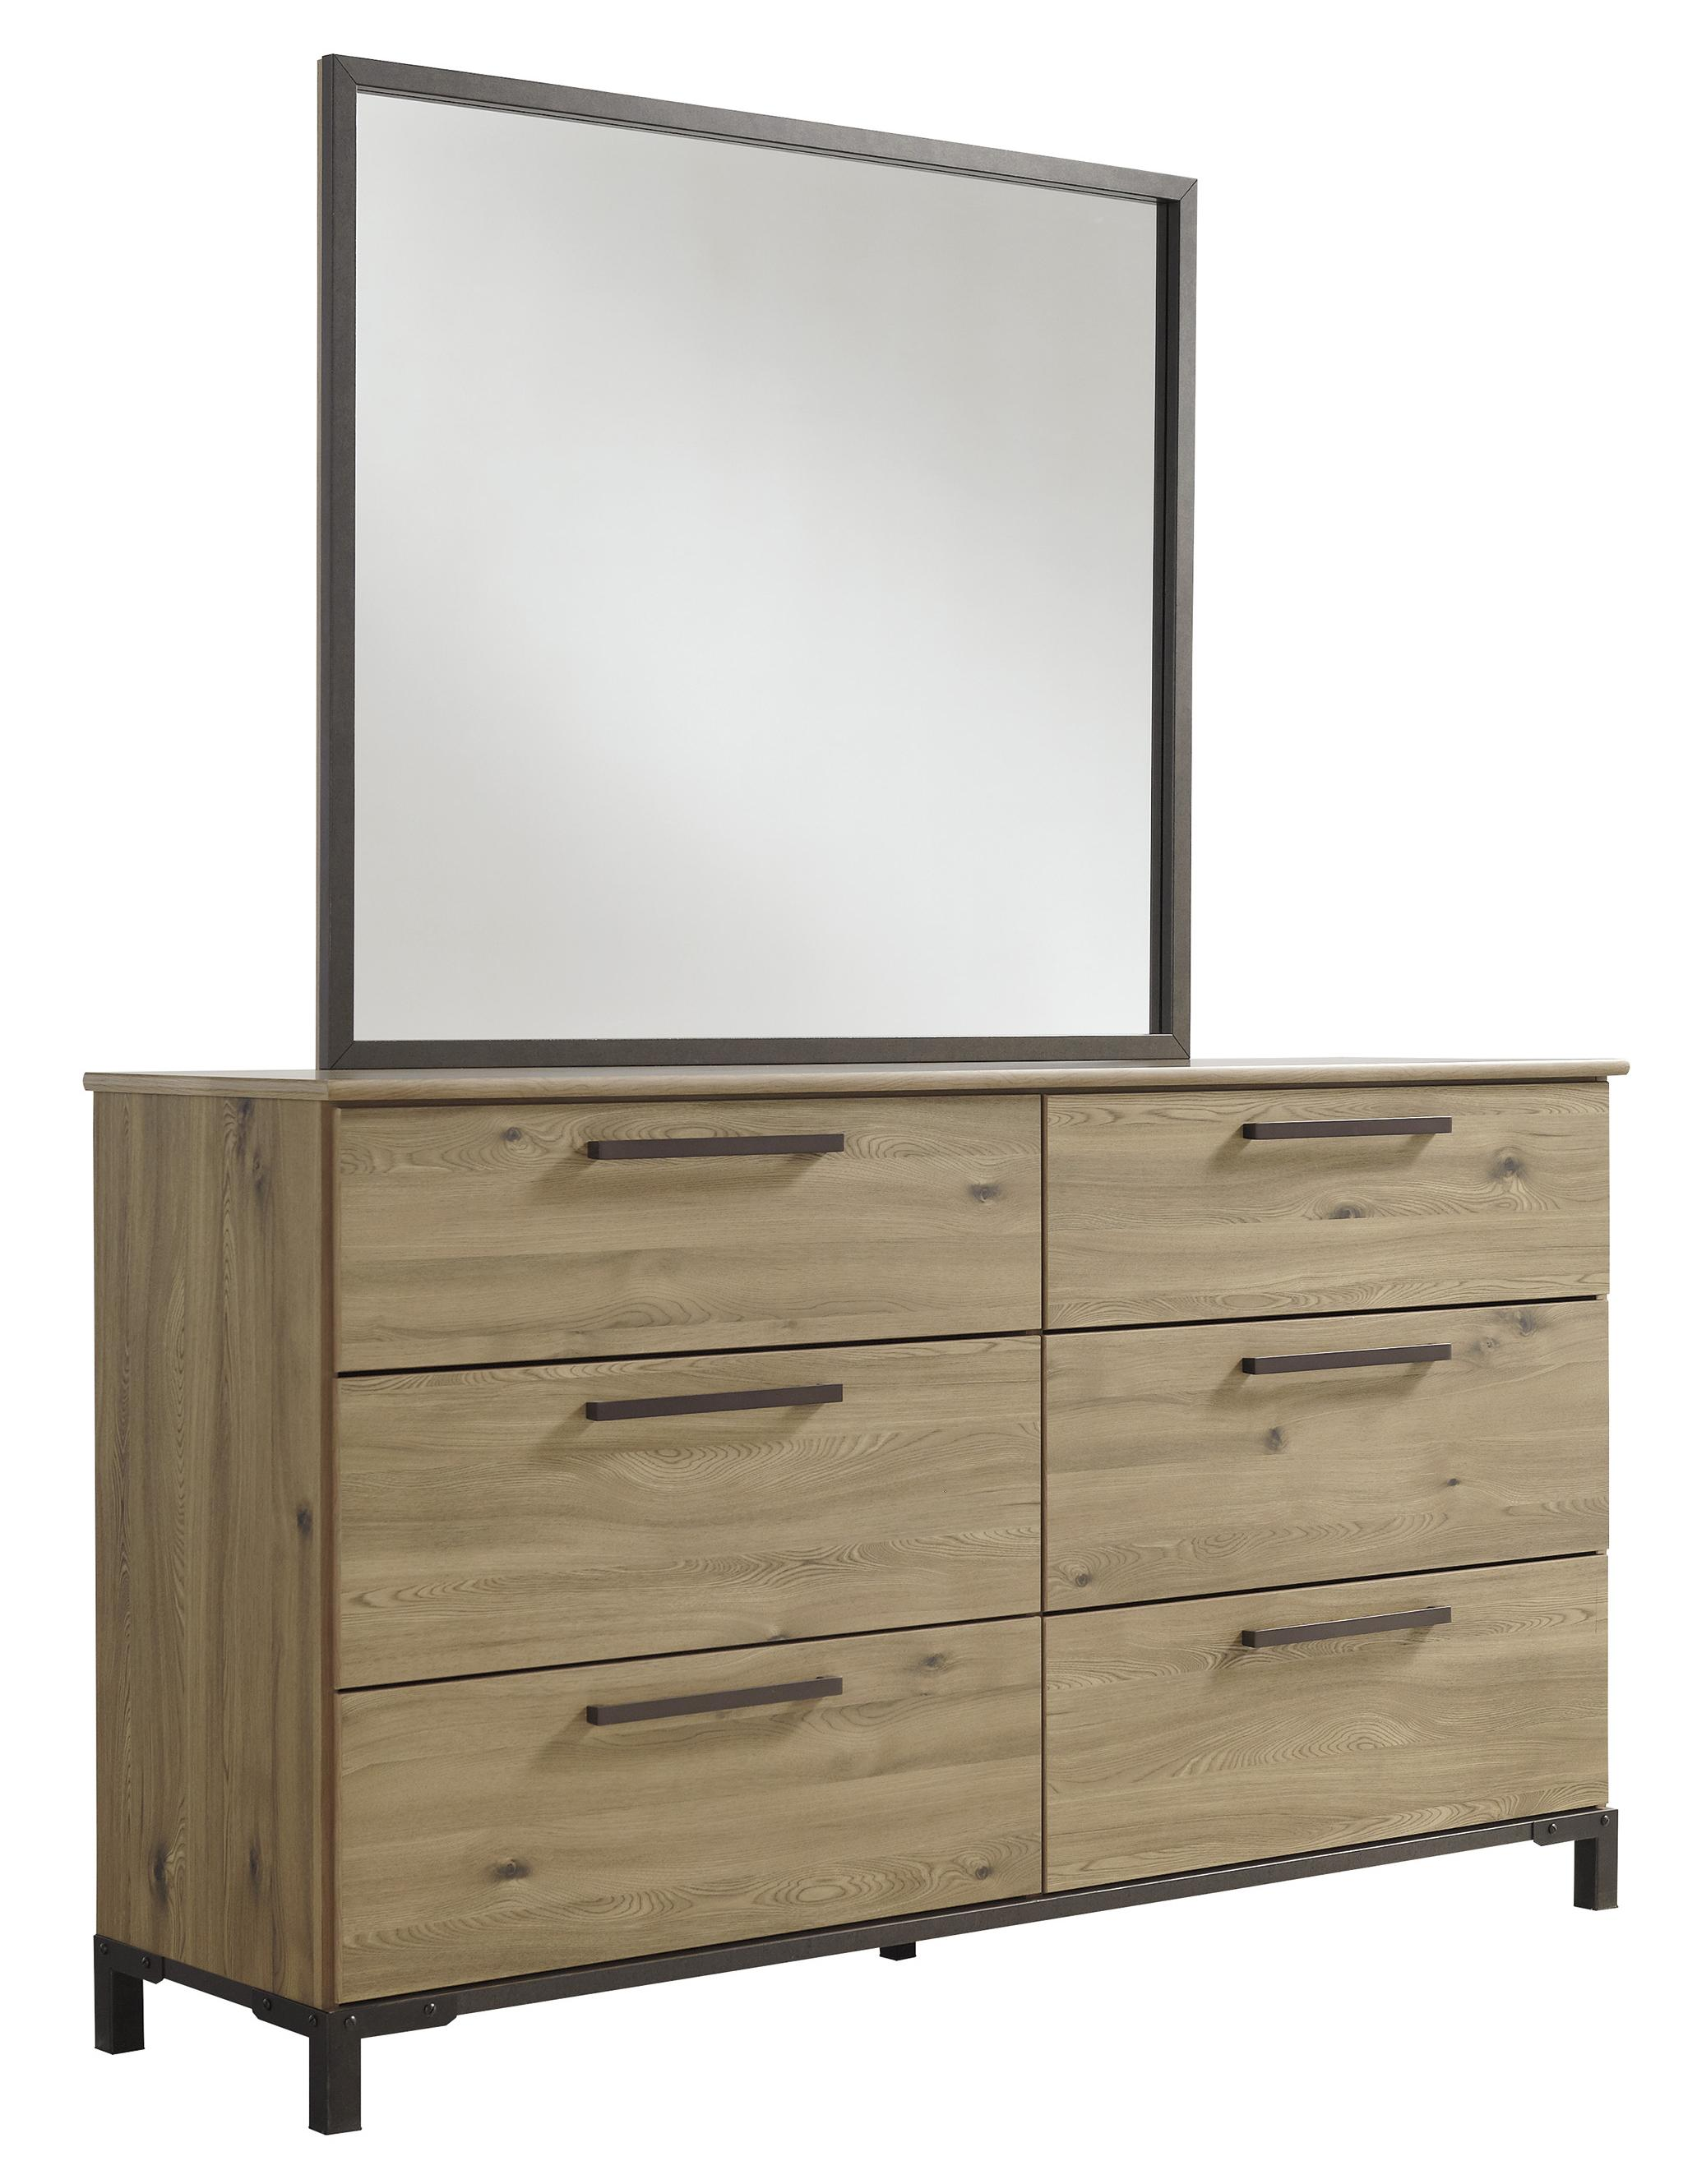 Signature Design by Ashley Dexifield Dresser & Bedroom Mirror - Item Number: B298-21+26